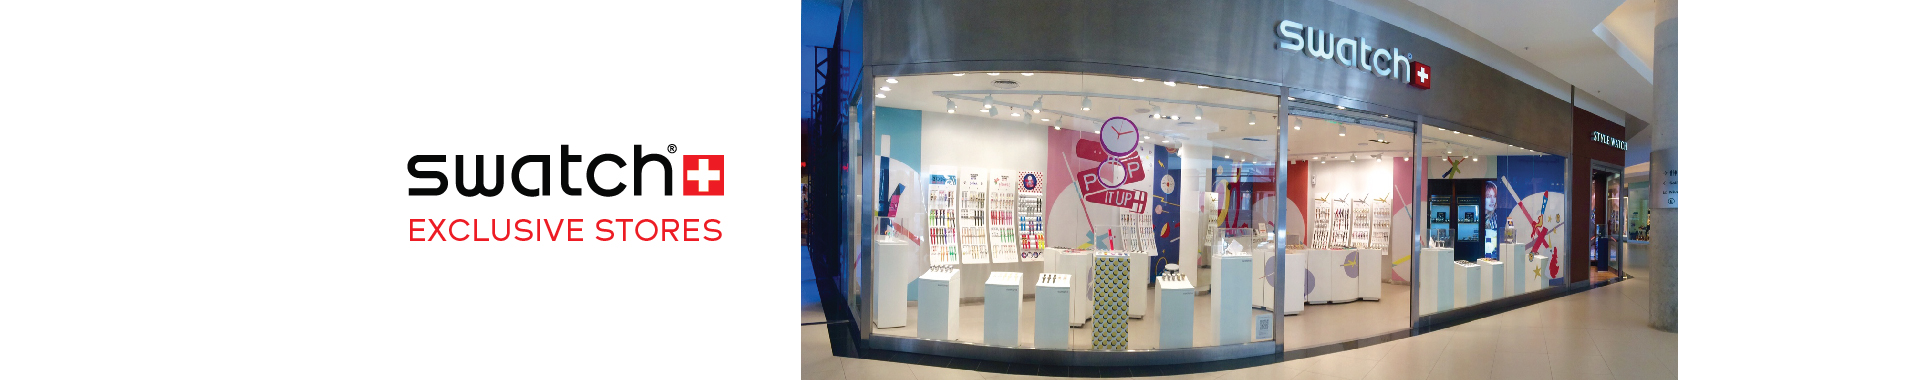 Swatch Stores